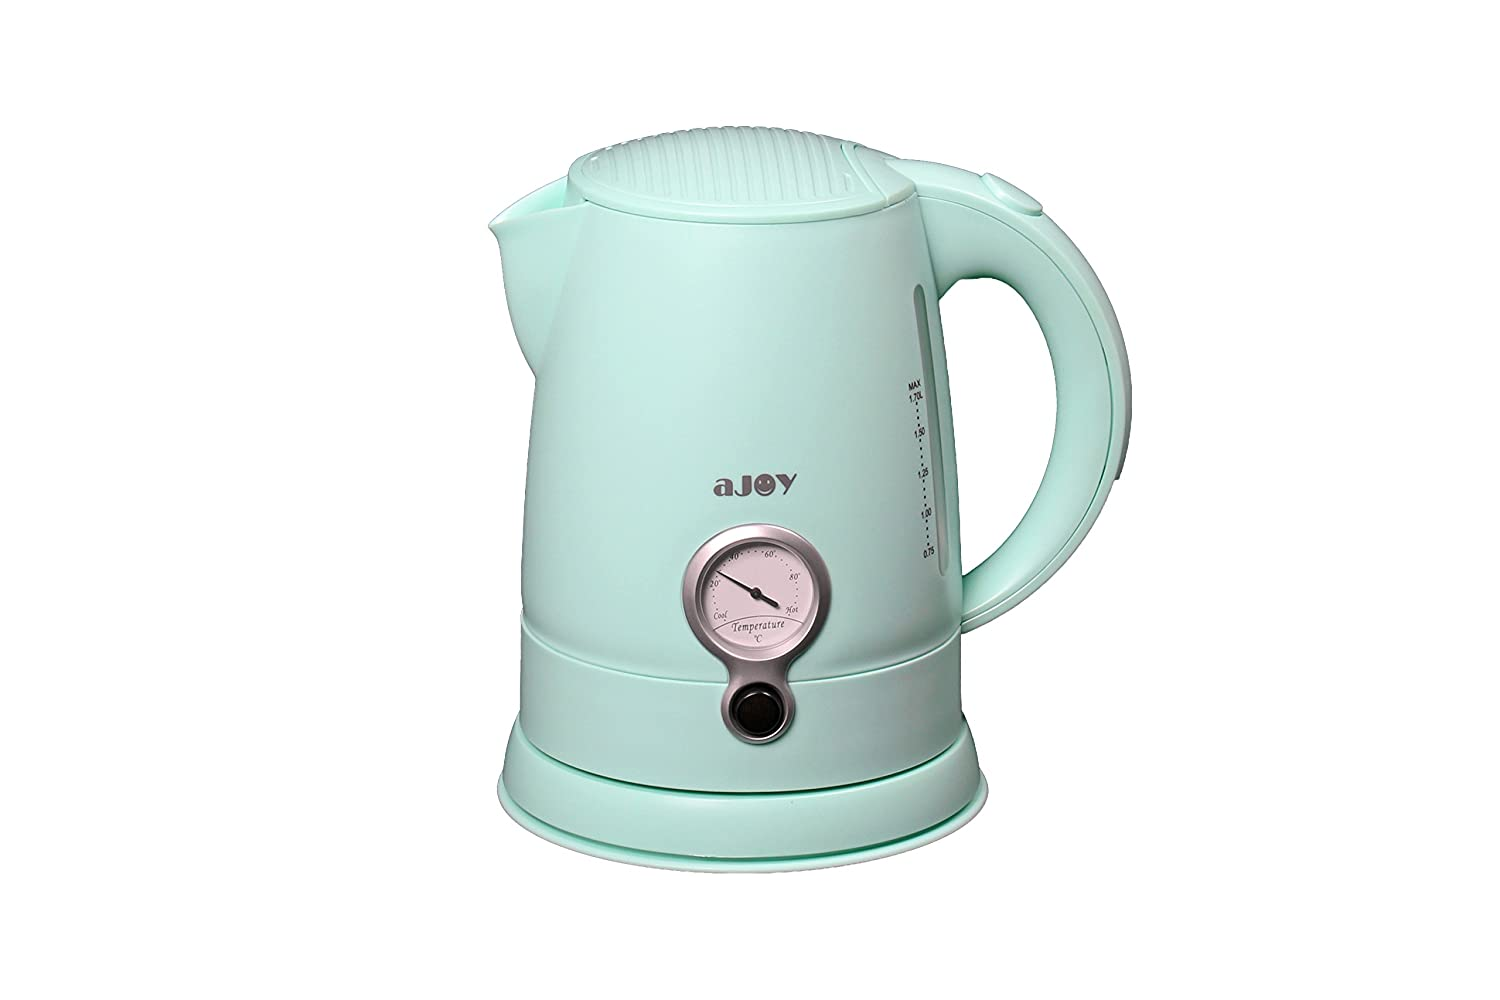 aJOY Professional Designer Series 1.7L Cordless Electric Kettle, BPA Free, 360 Degree Conceal Heating Element, Overheat Protection Control (Green)